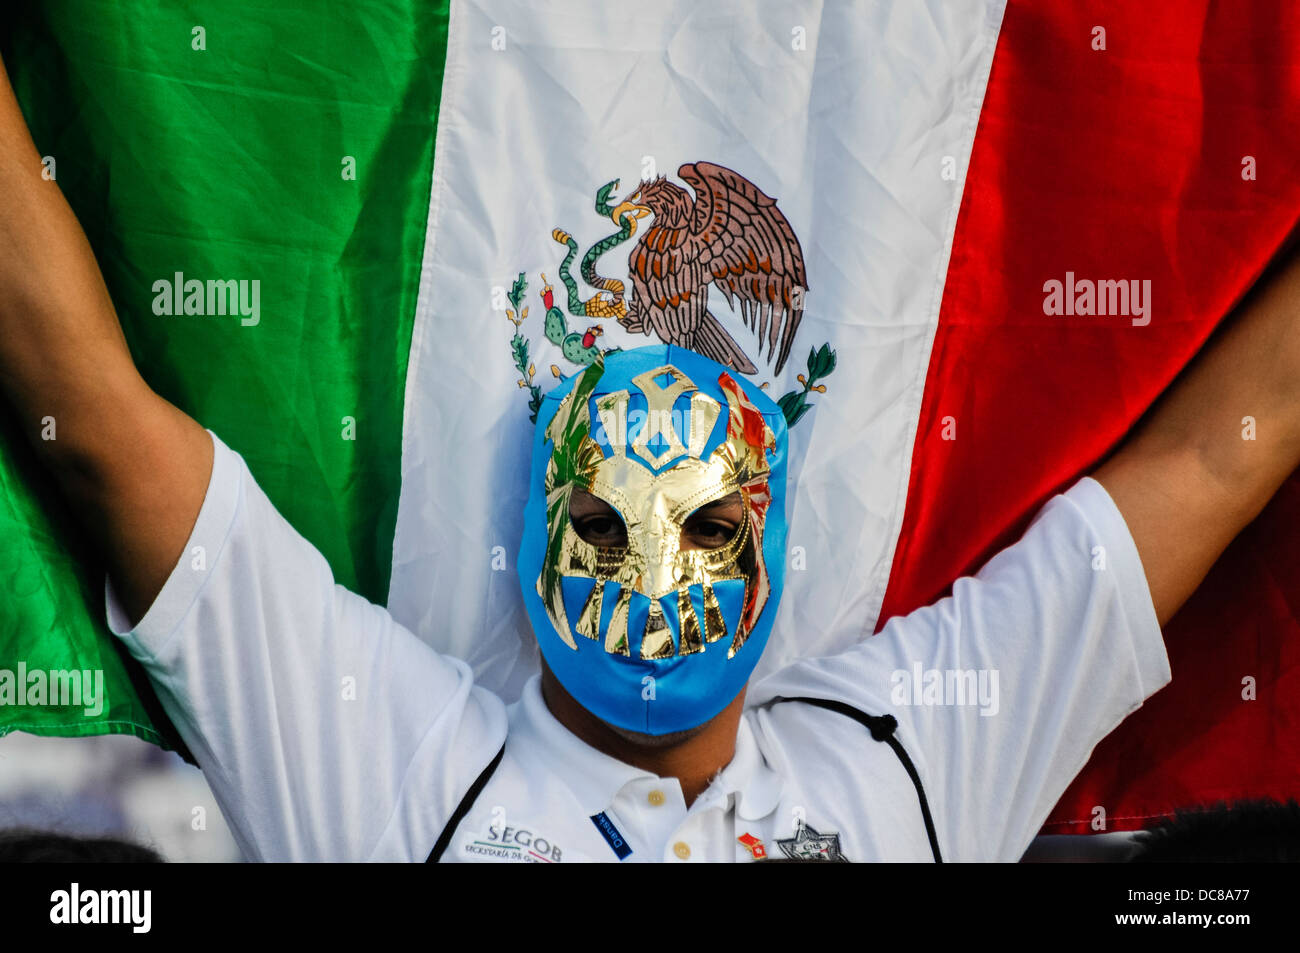 A man wears a Mexican wrestler's mask and holds up a Mexican flag - Stock Image